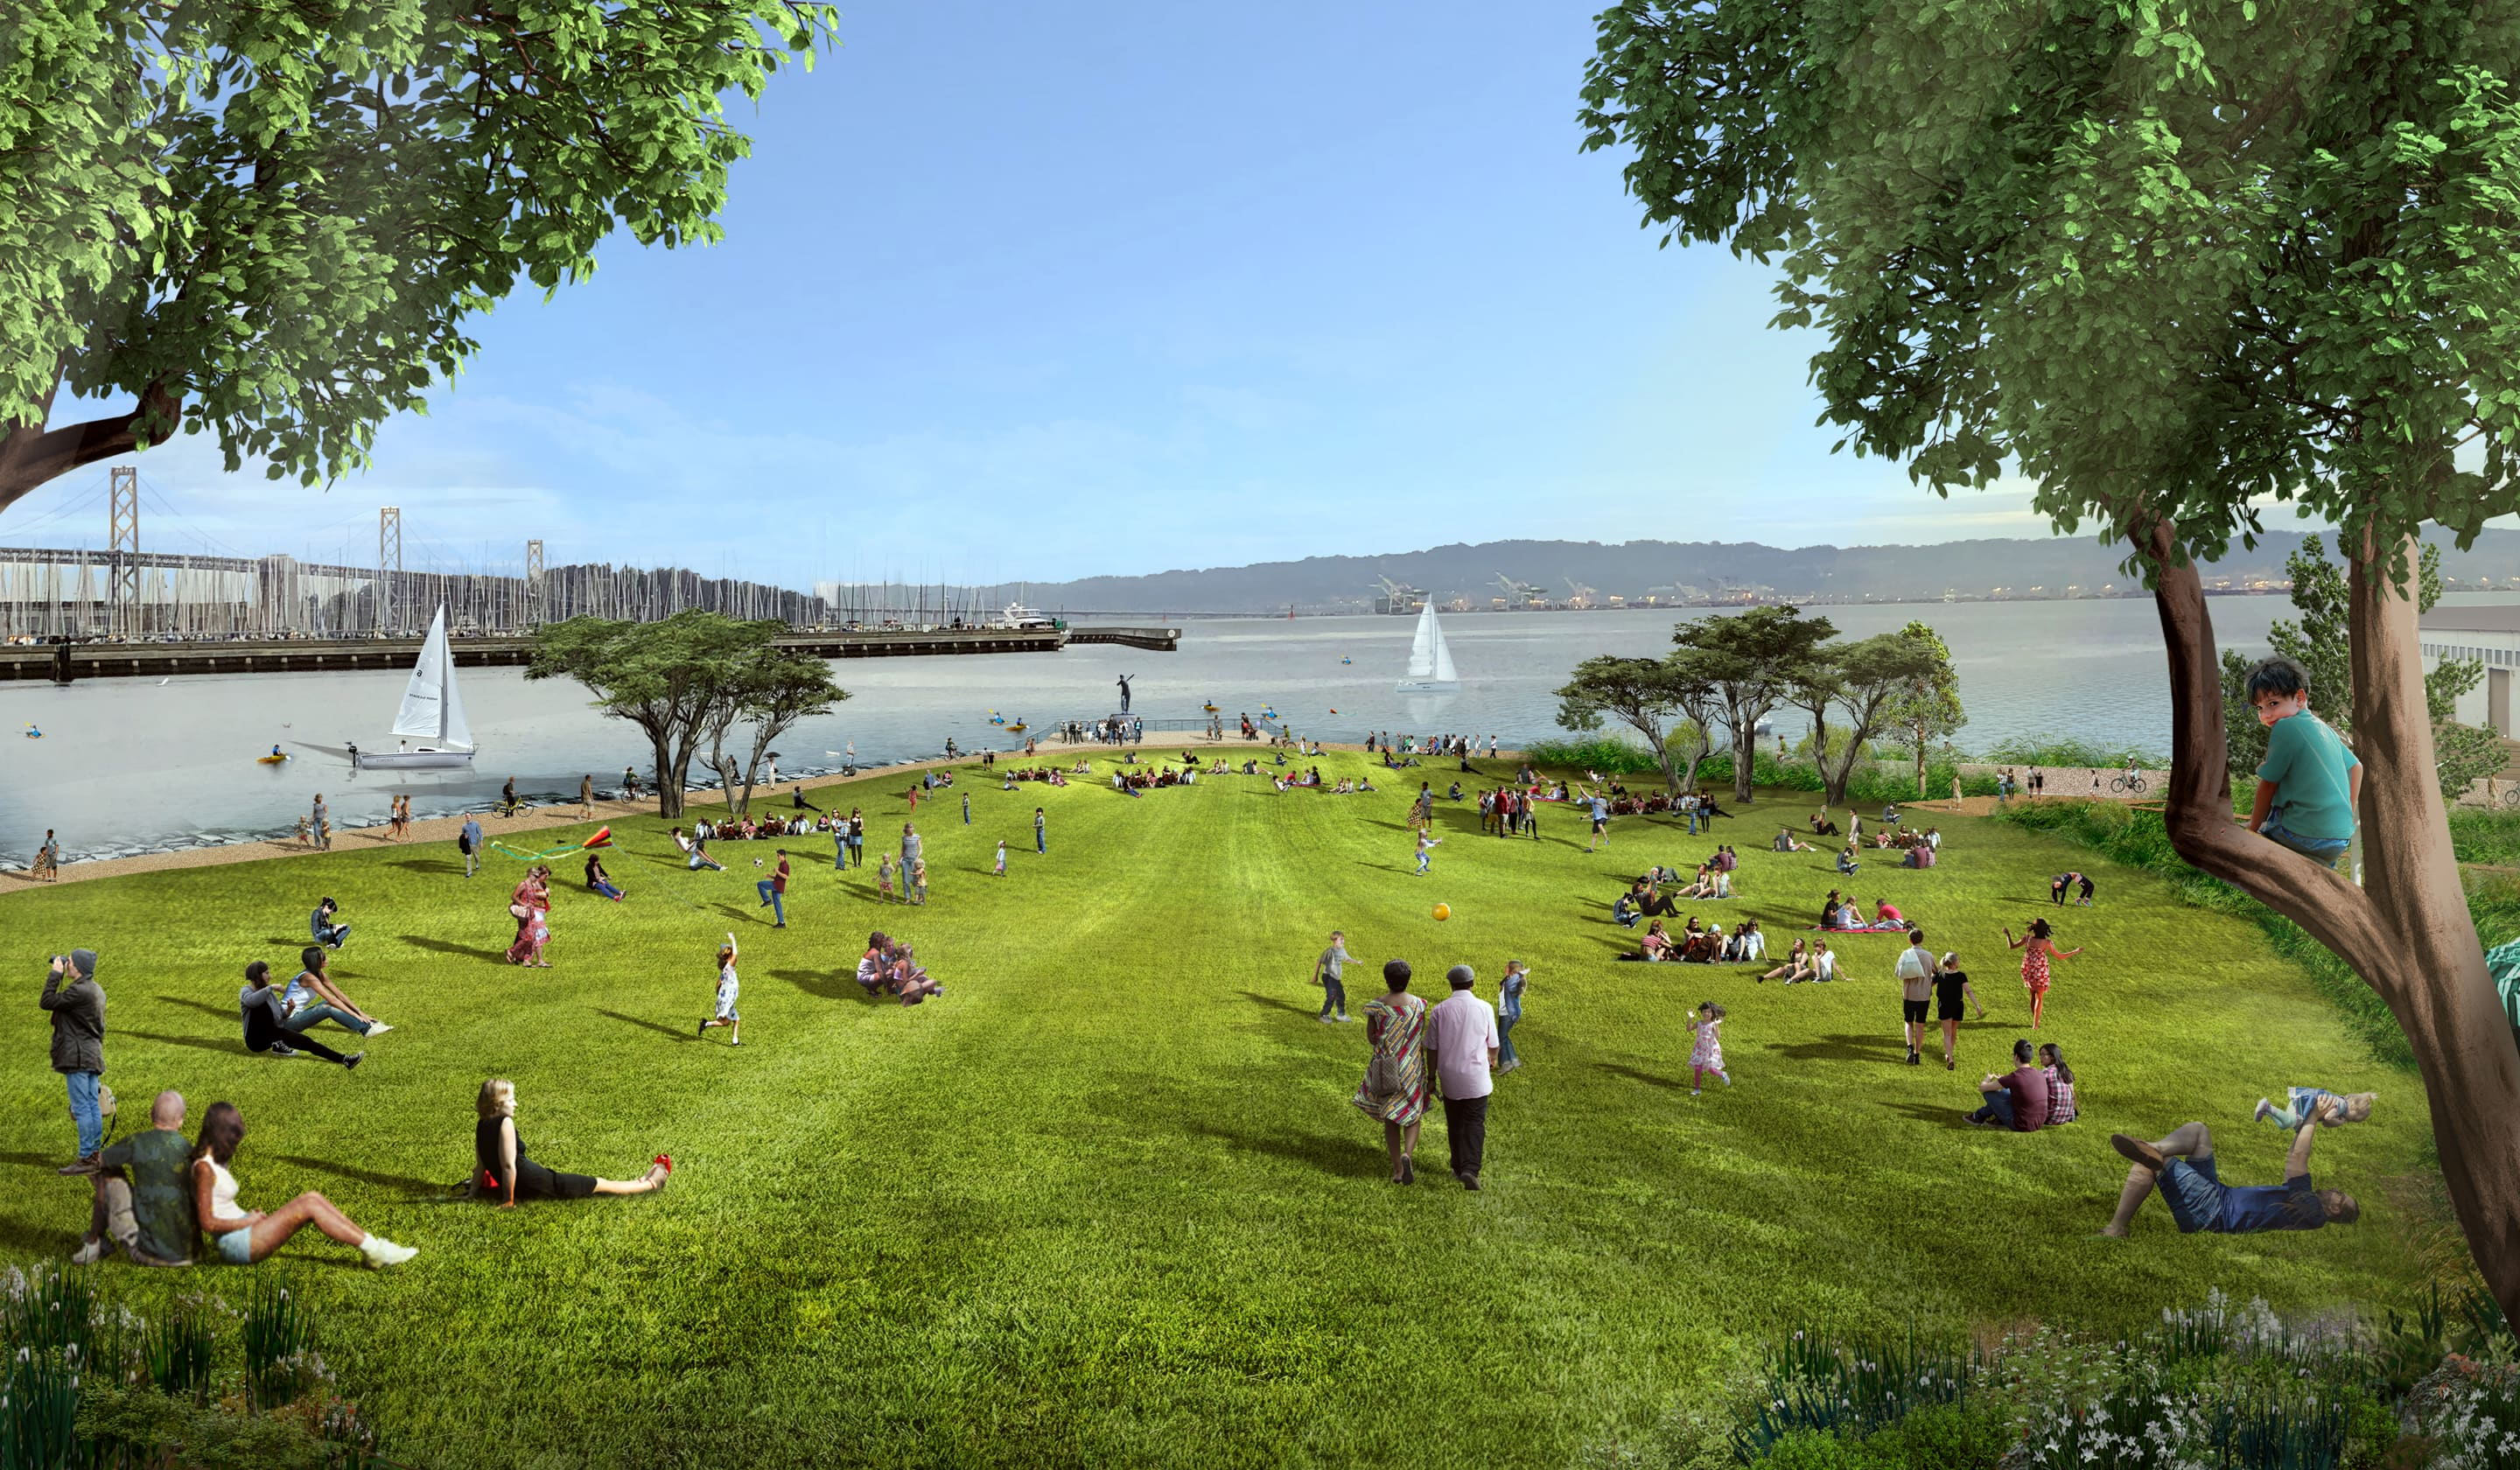 Great Lawn – Daytime at China Basin Park